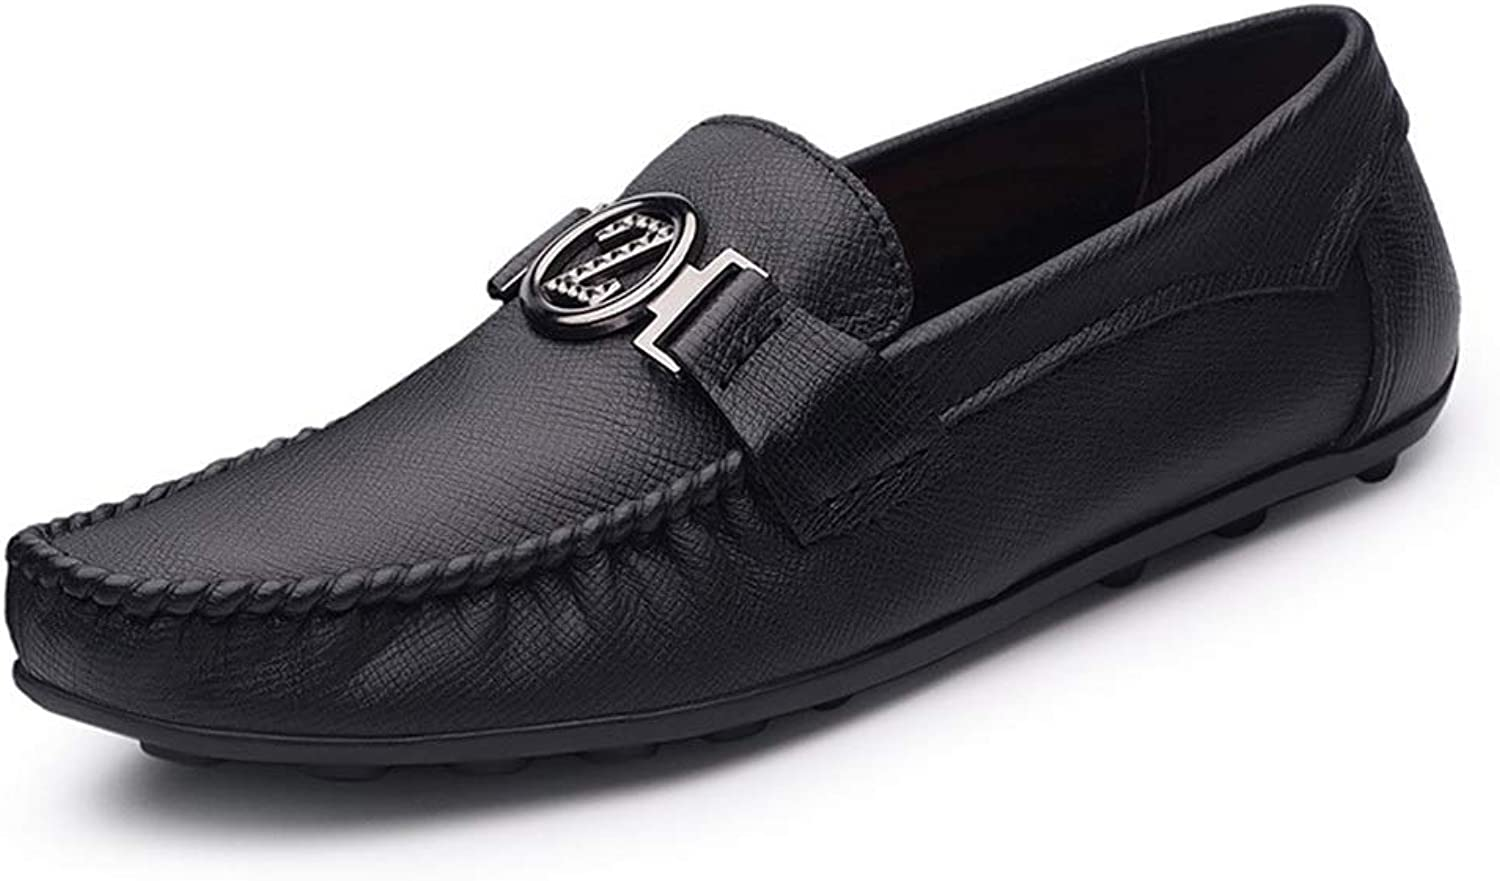 Round Head Business Top Layer Cow Leather Single shoes Men's Handmade shoes Men's Casual shoes (color   Black, Size   41)